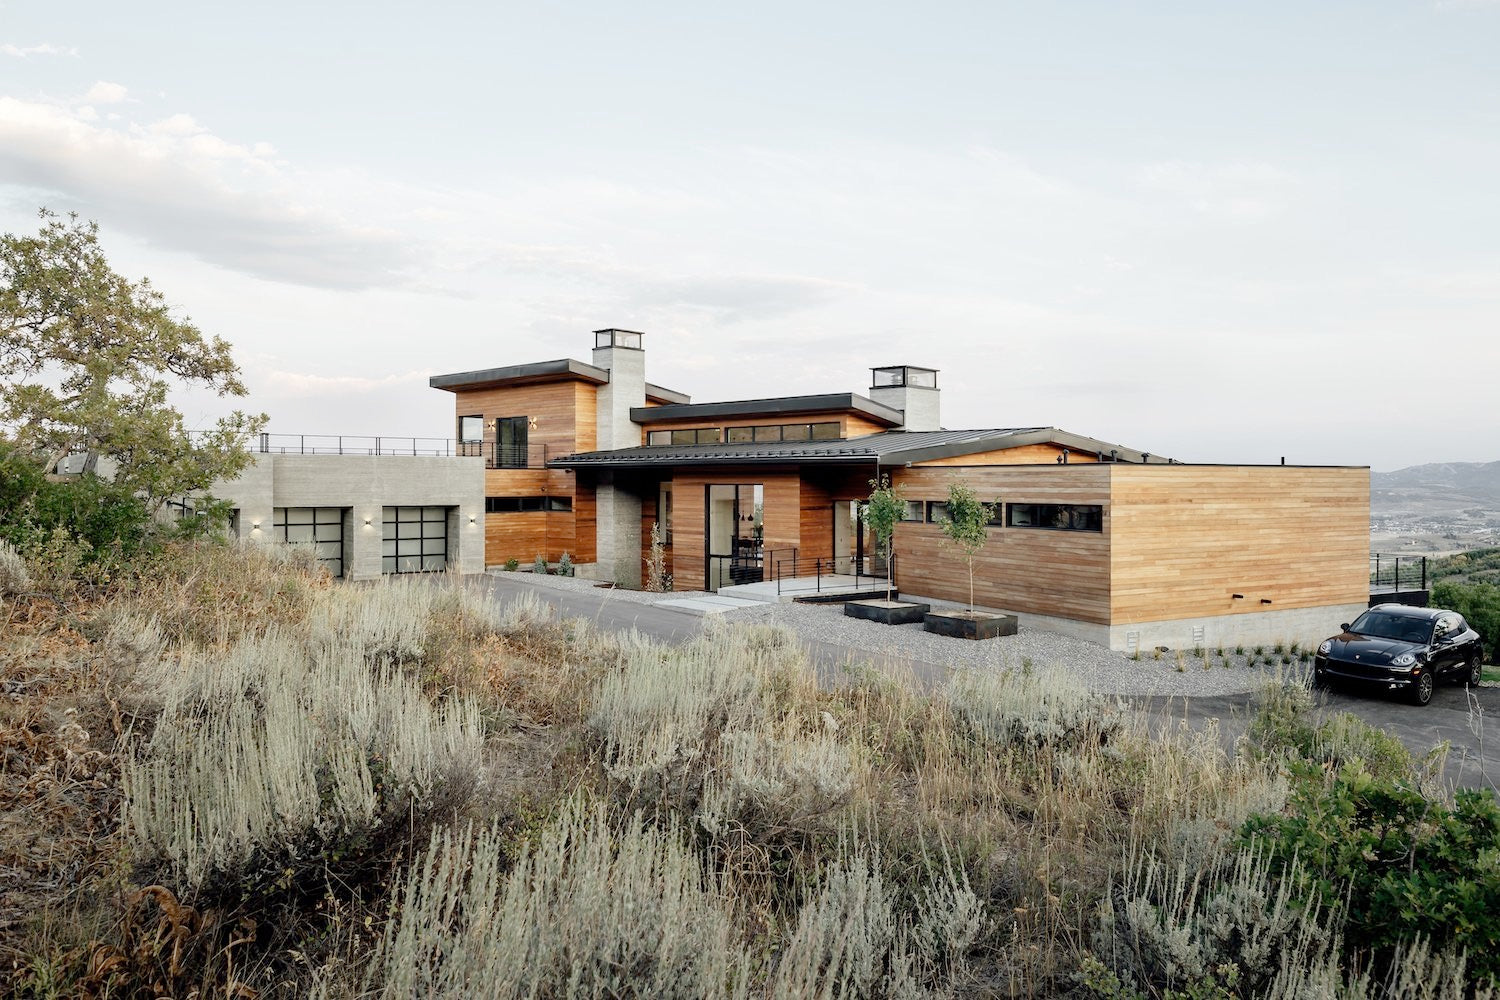 dwell - axboe house, park city ut